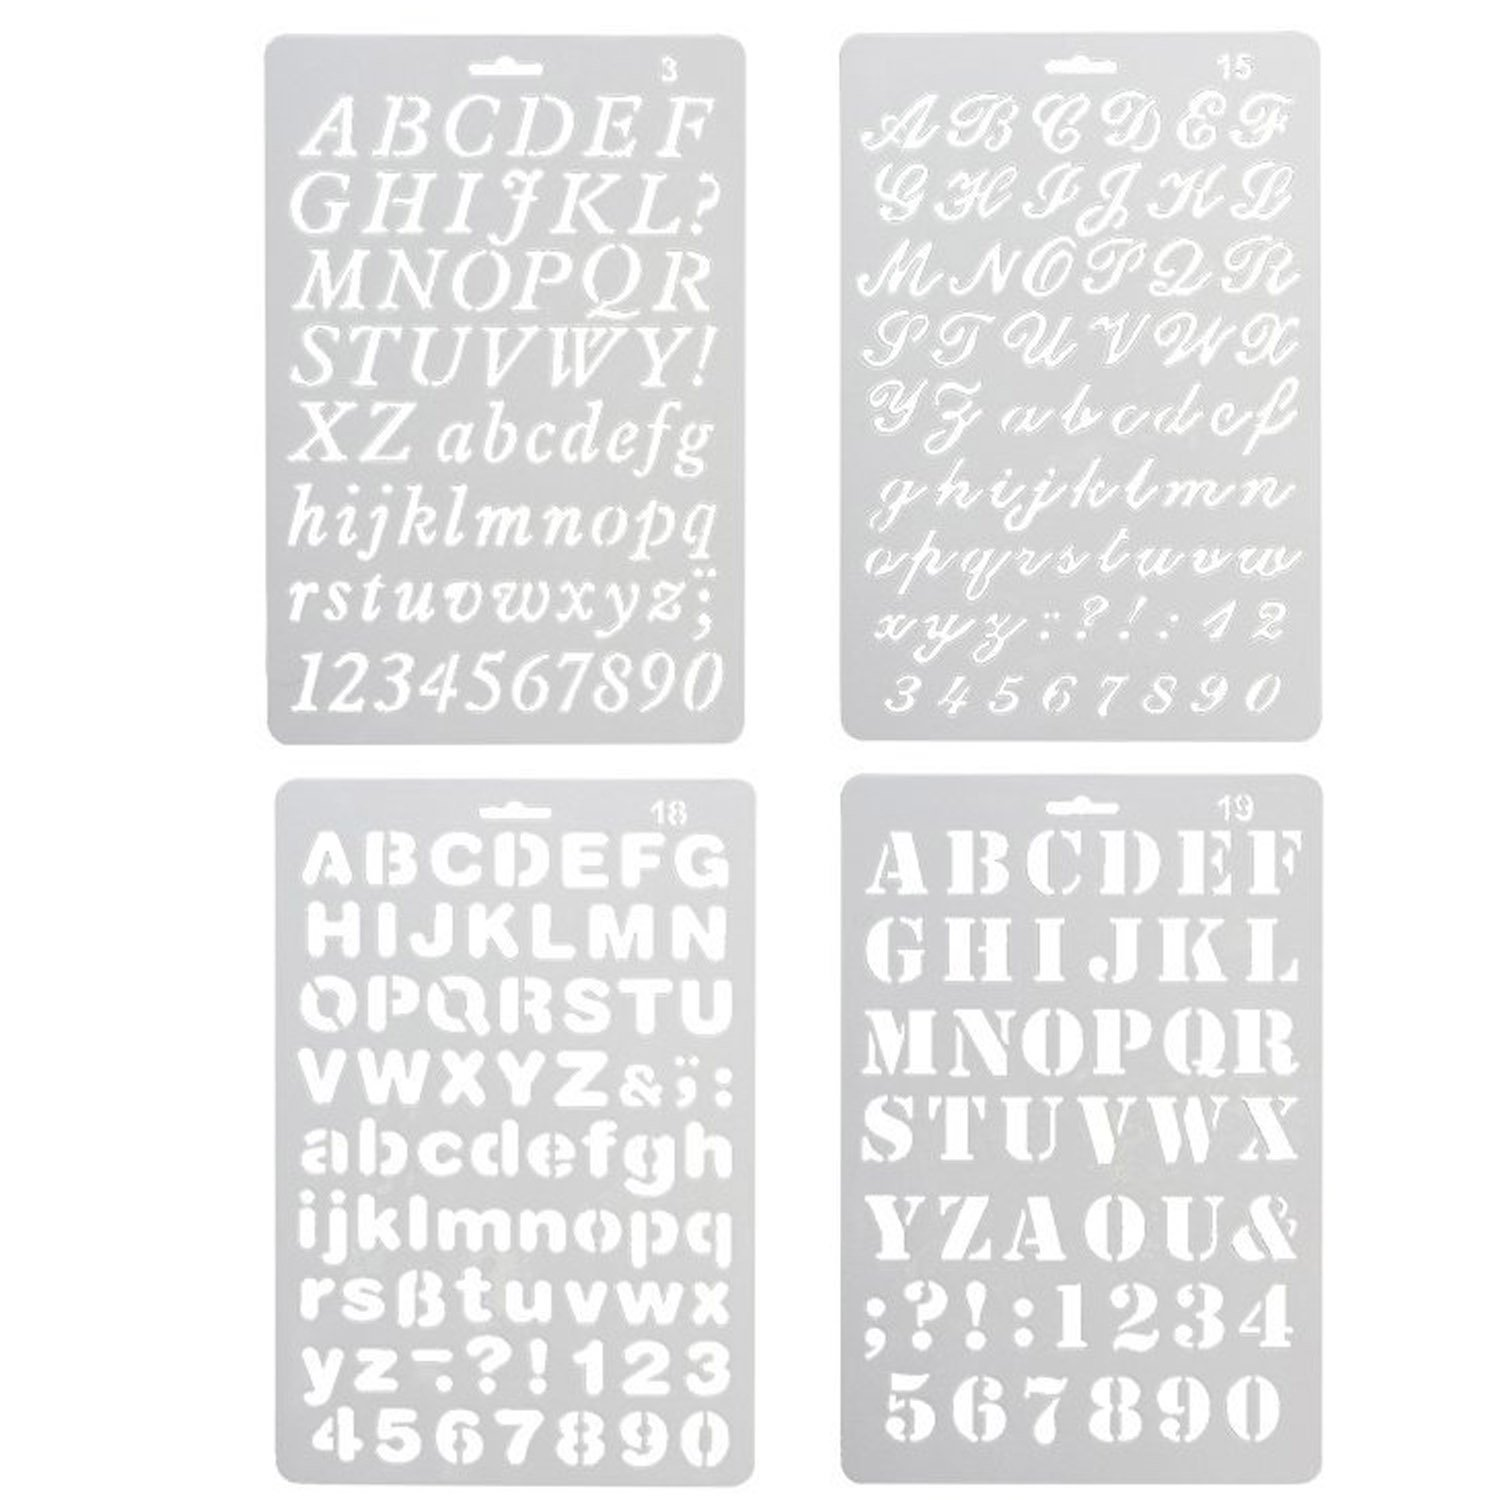 4 PCS Assorted Styles Plastic Number And Letter Artistic Drafting Drawing Templates Stencil Set For DIY Craft Journal Photo Album Scrapbook Schedule Book Diary Art Projects Gosear